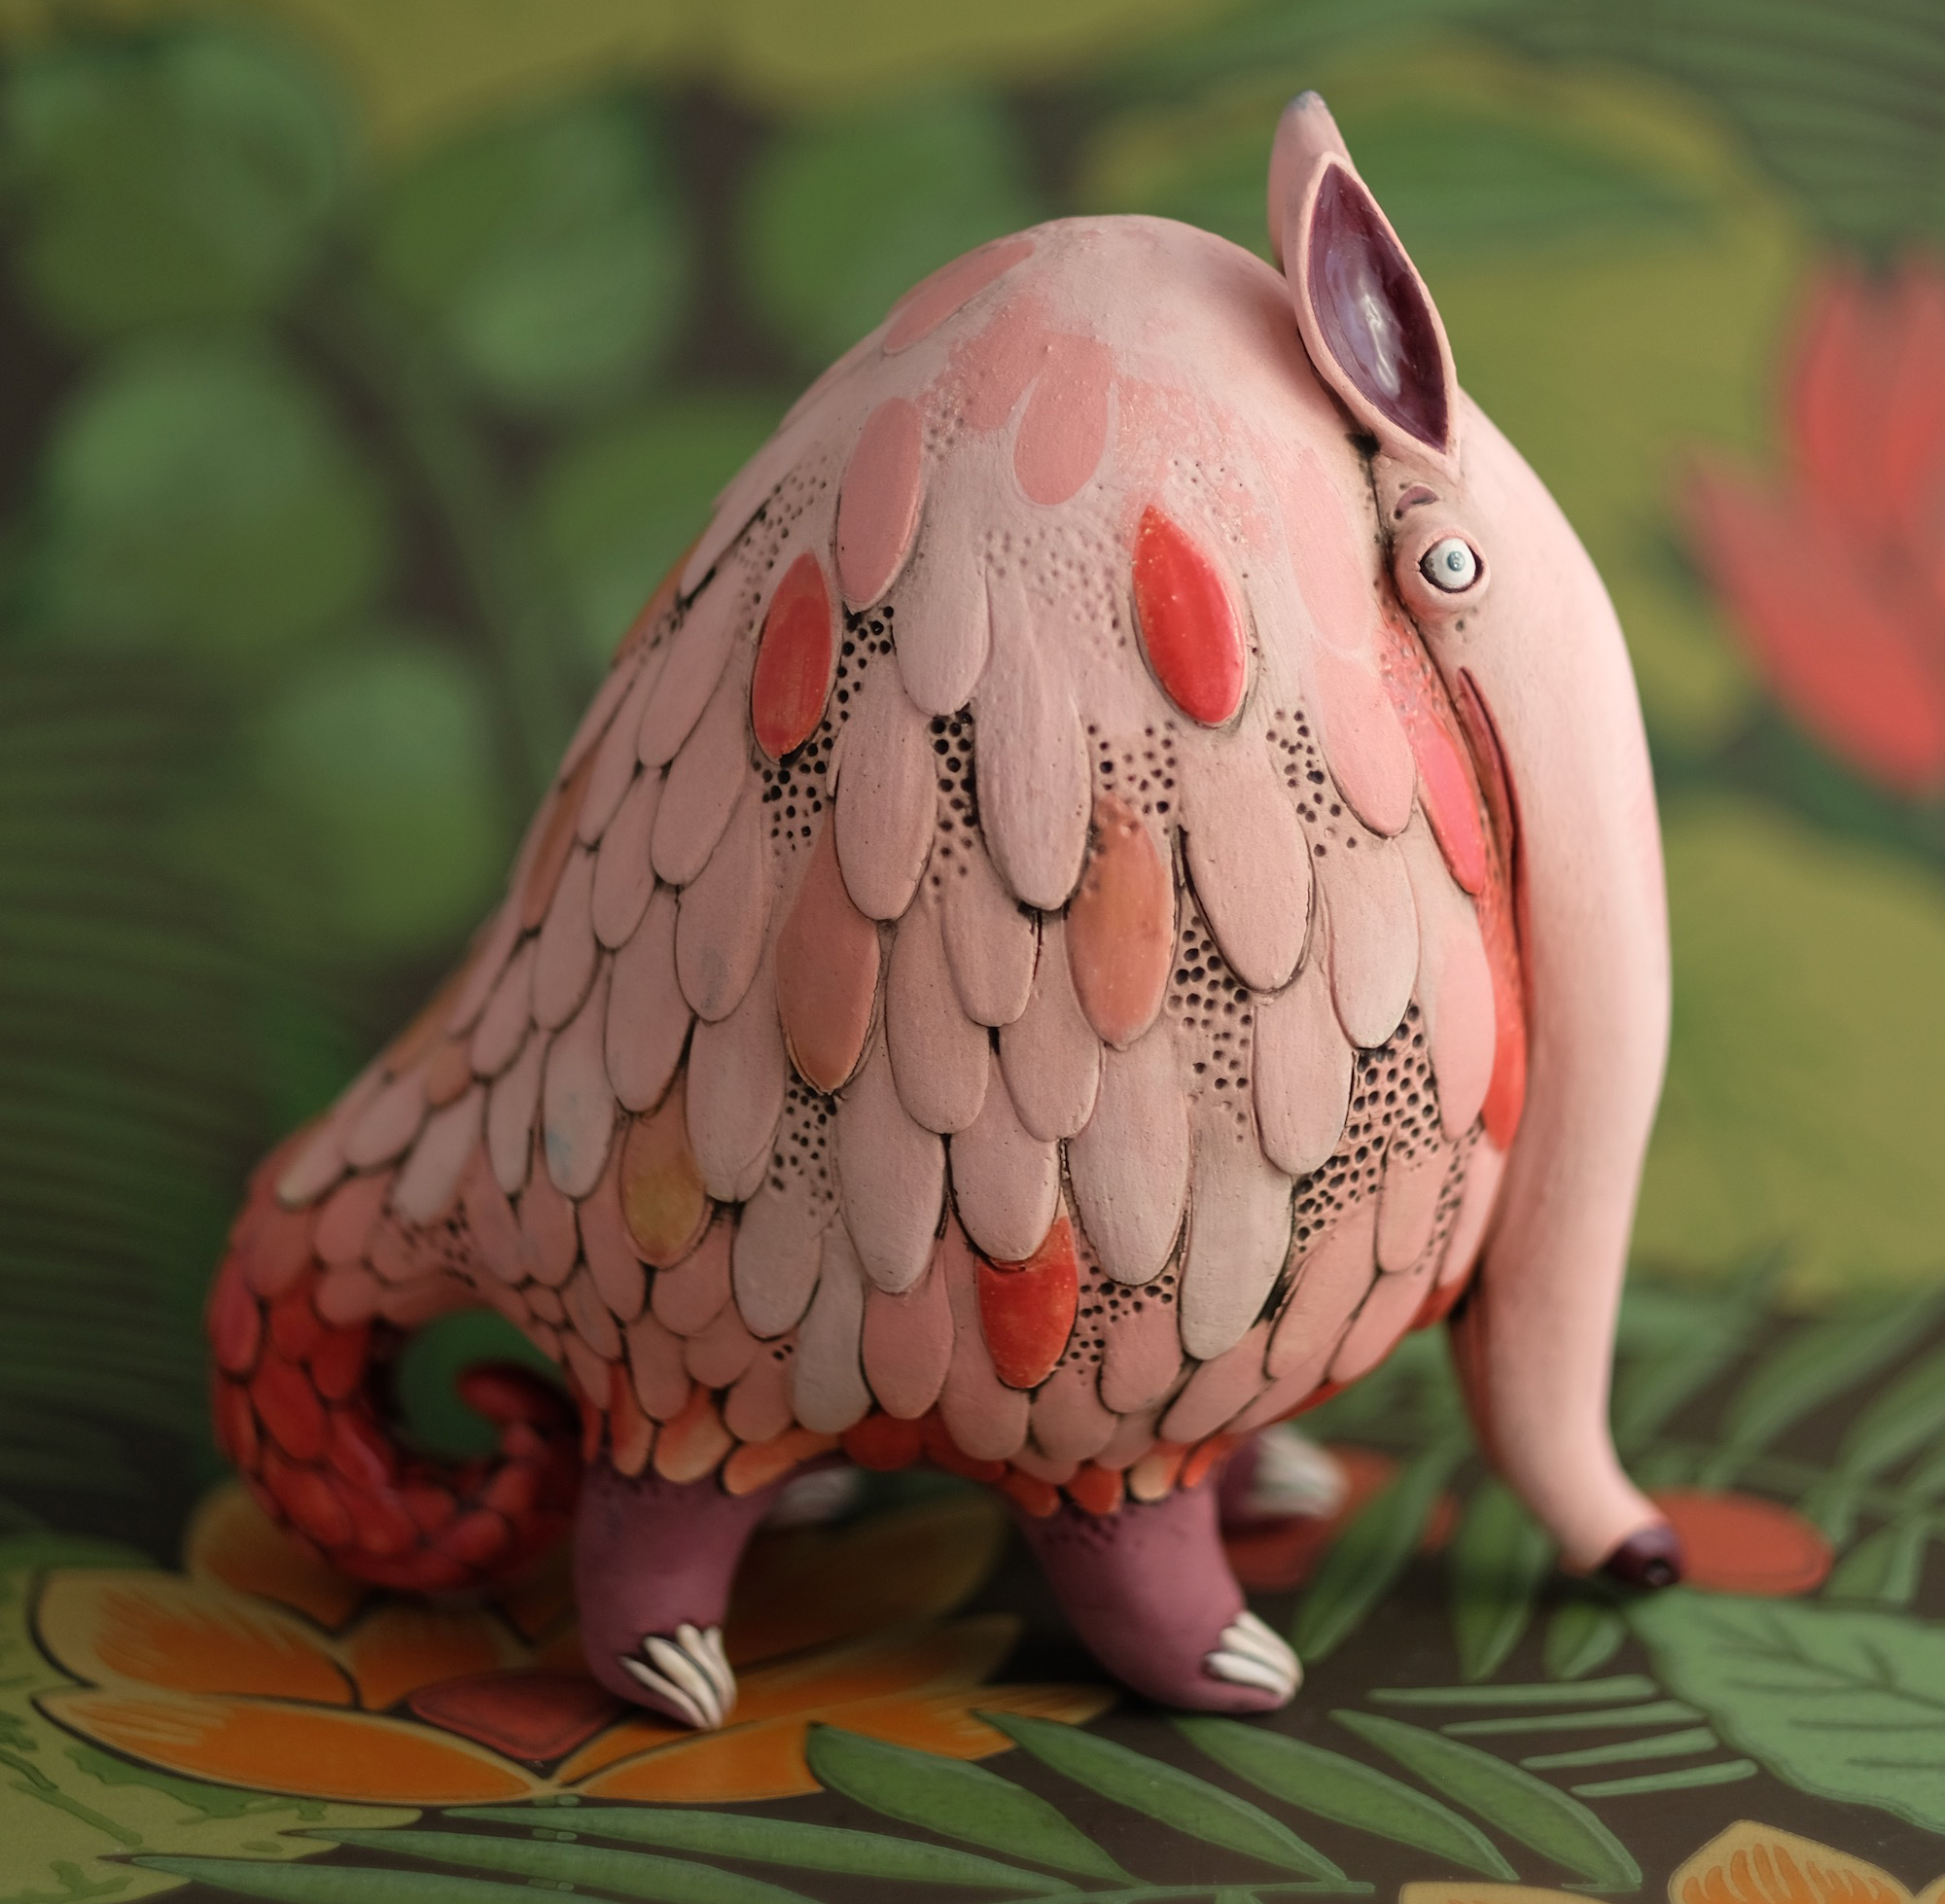 Derpy Animals by Ceramicist Nastia Calaca Channel Peculiar Storybook Characters